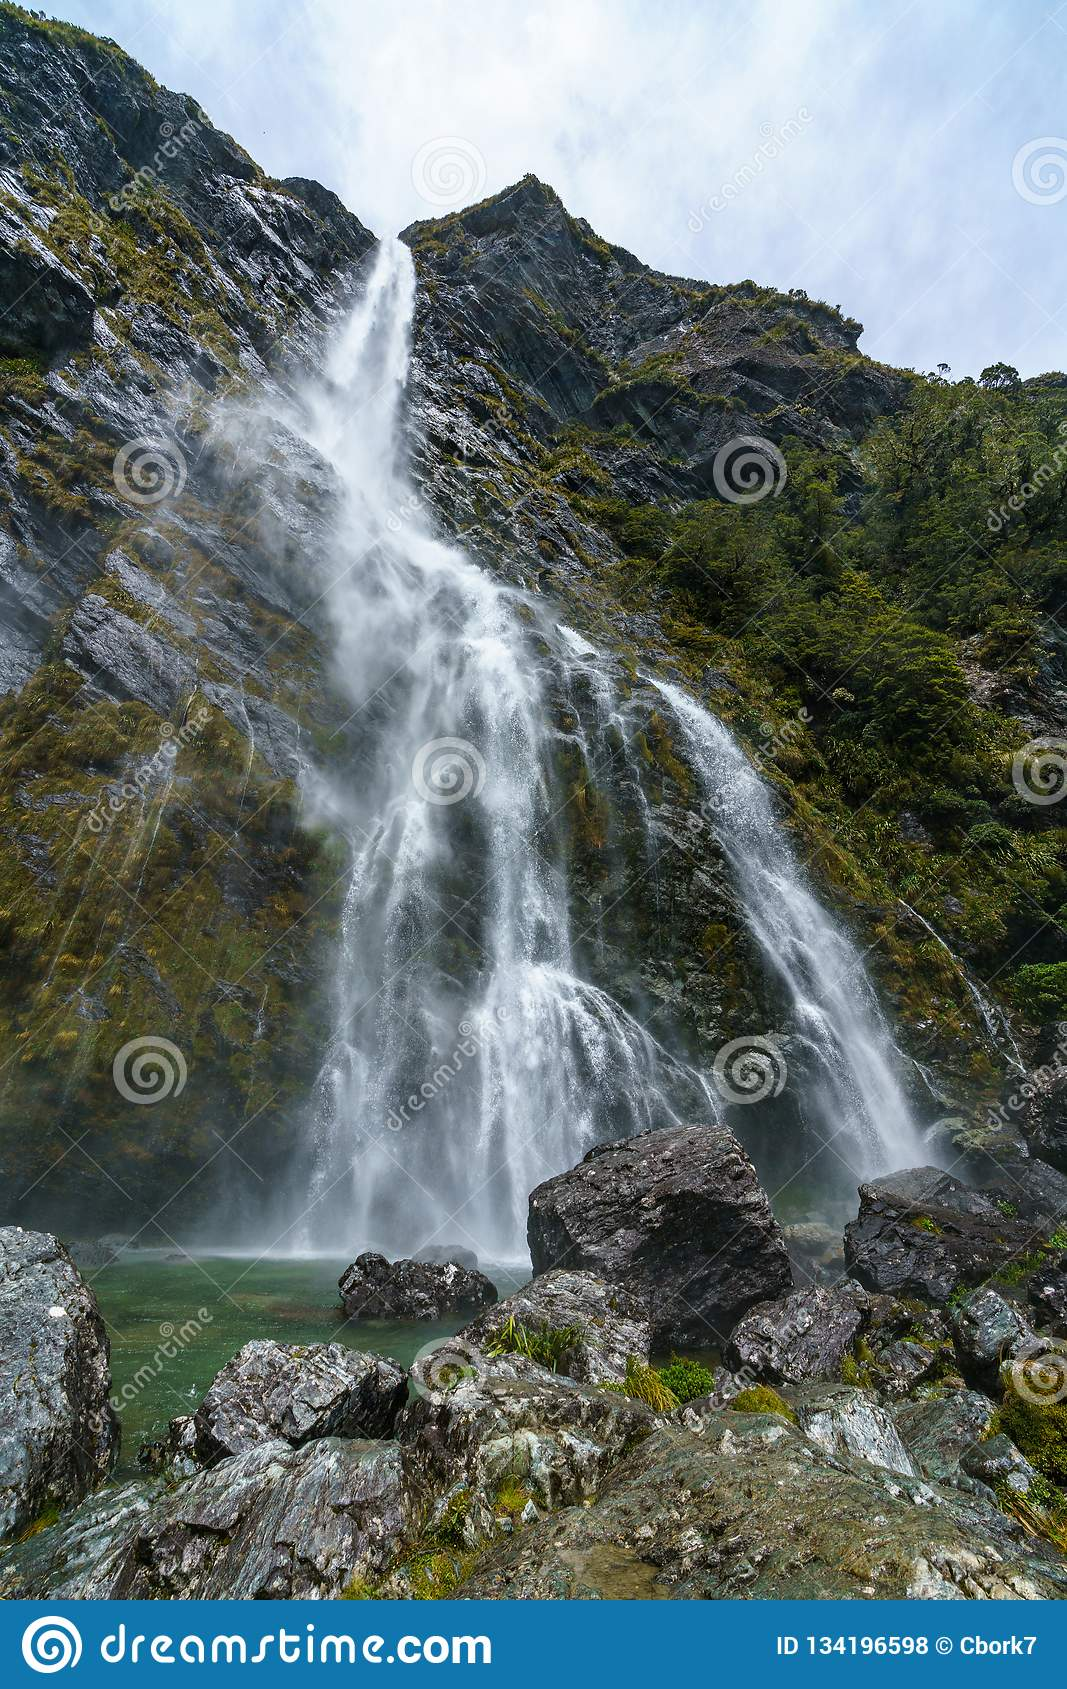 Mighty waterfalls, earland falls, southland, new zealand 10